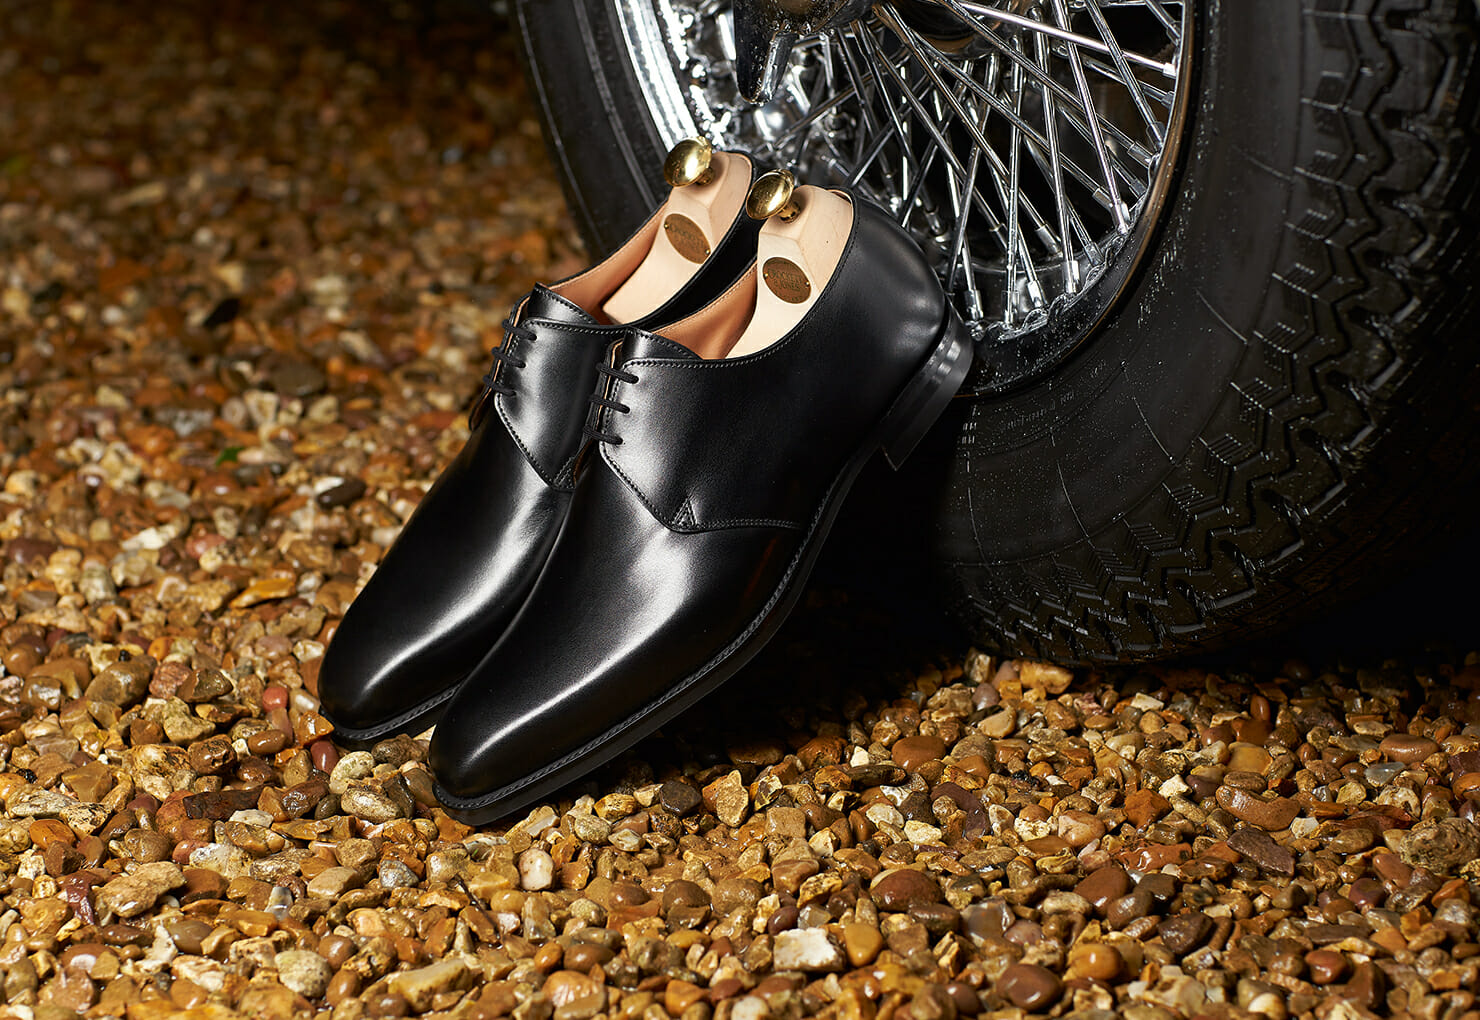 Dress Like James Bond: A Guide To Men's Dress Shoes, From Oxford To Loafers